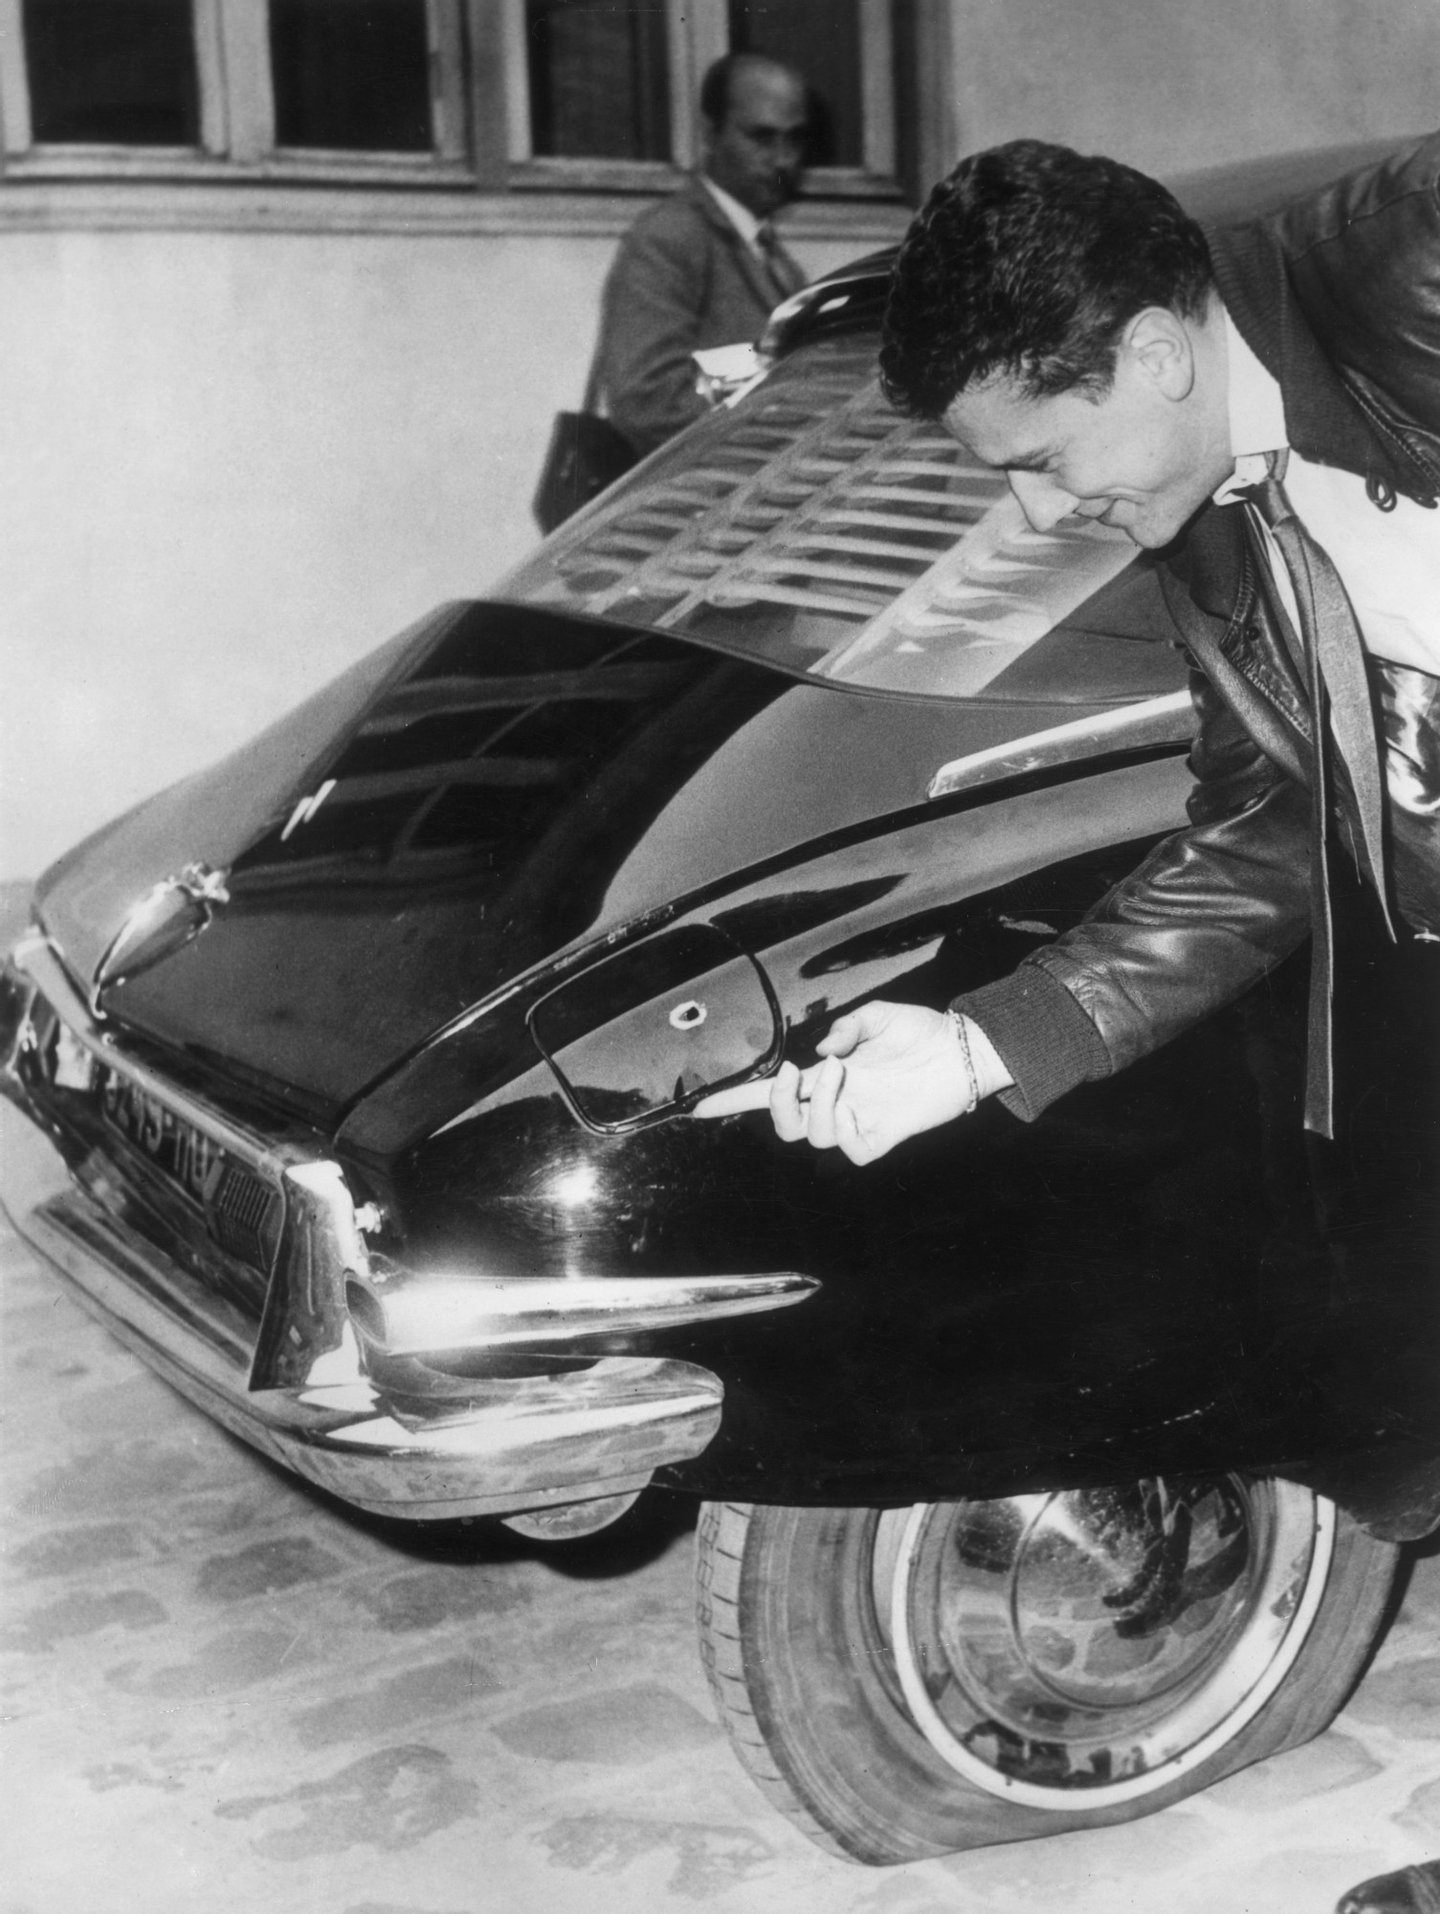 23rd August 1962: A man examines one of the bullet holes in French president General de Gaulle's Citroen DS in Paris, after an assassination attempt in the Paris suburb of Le Petit-Clamart, on 22nd August 1962. (Photo by Keystone/Getty Images)